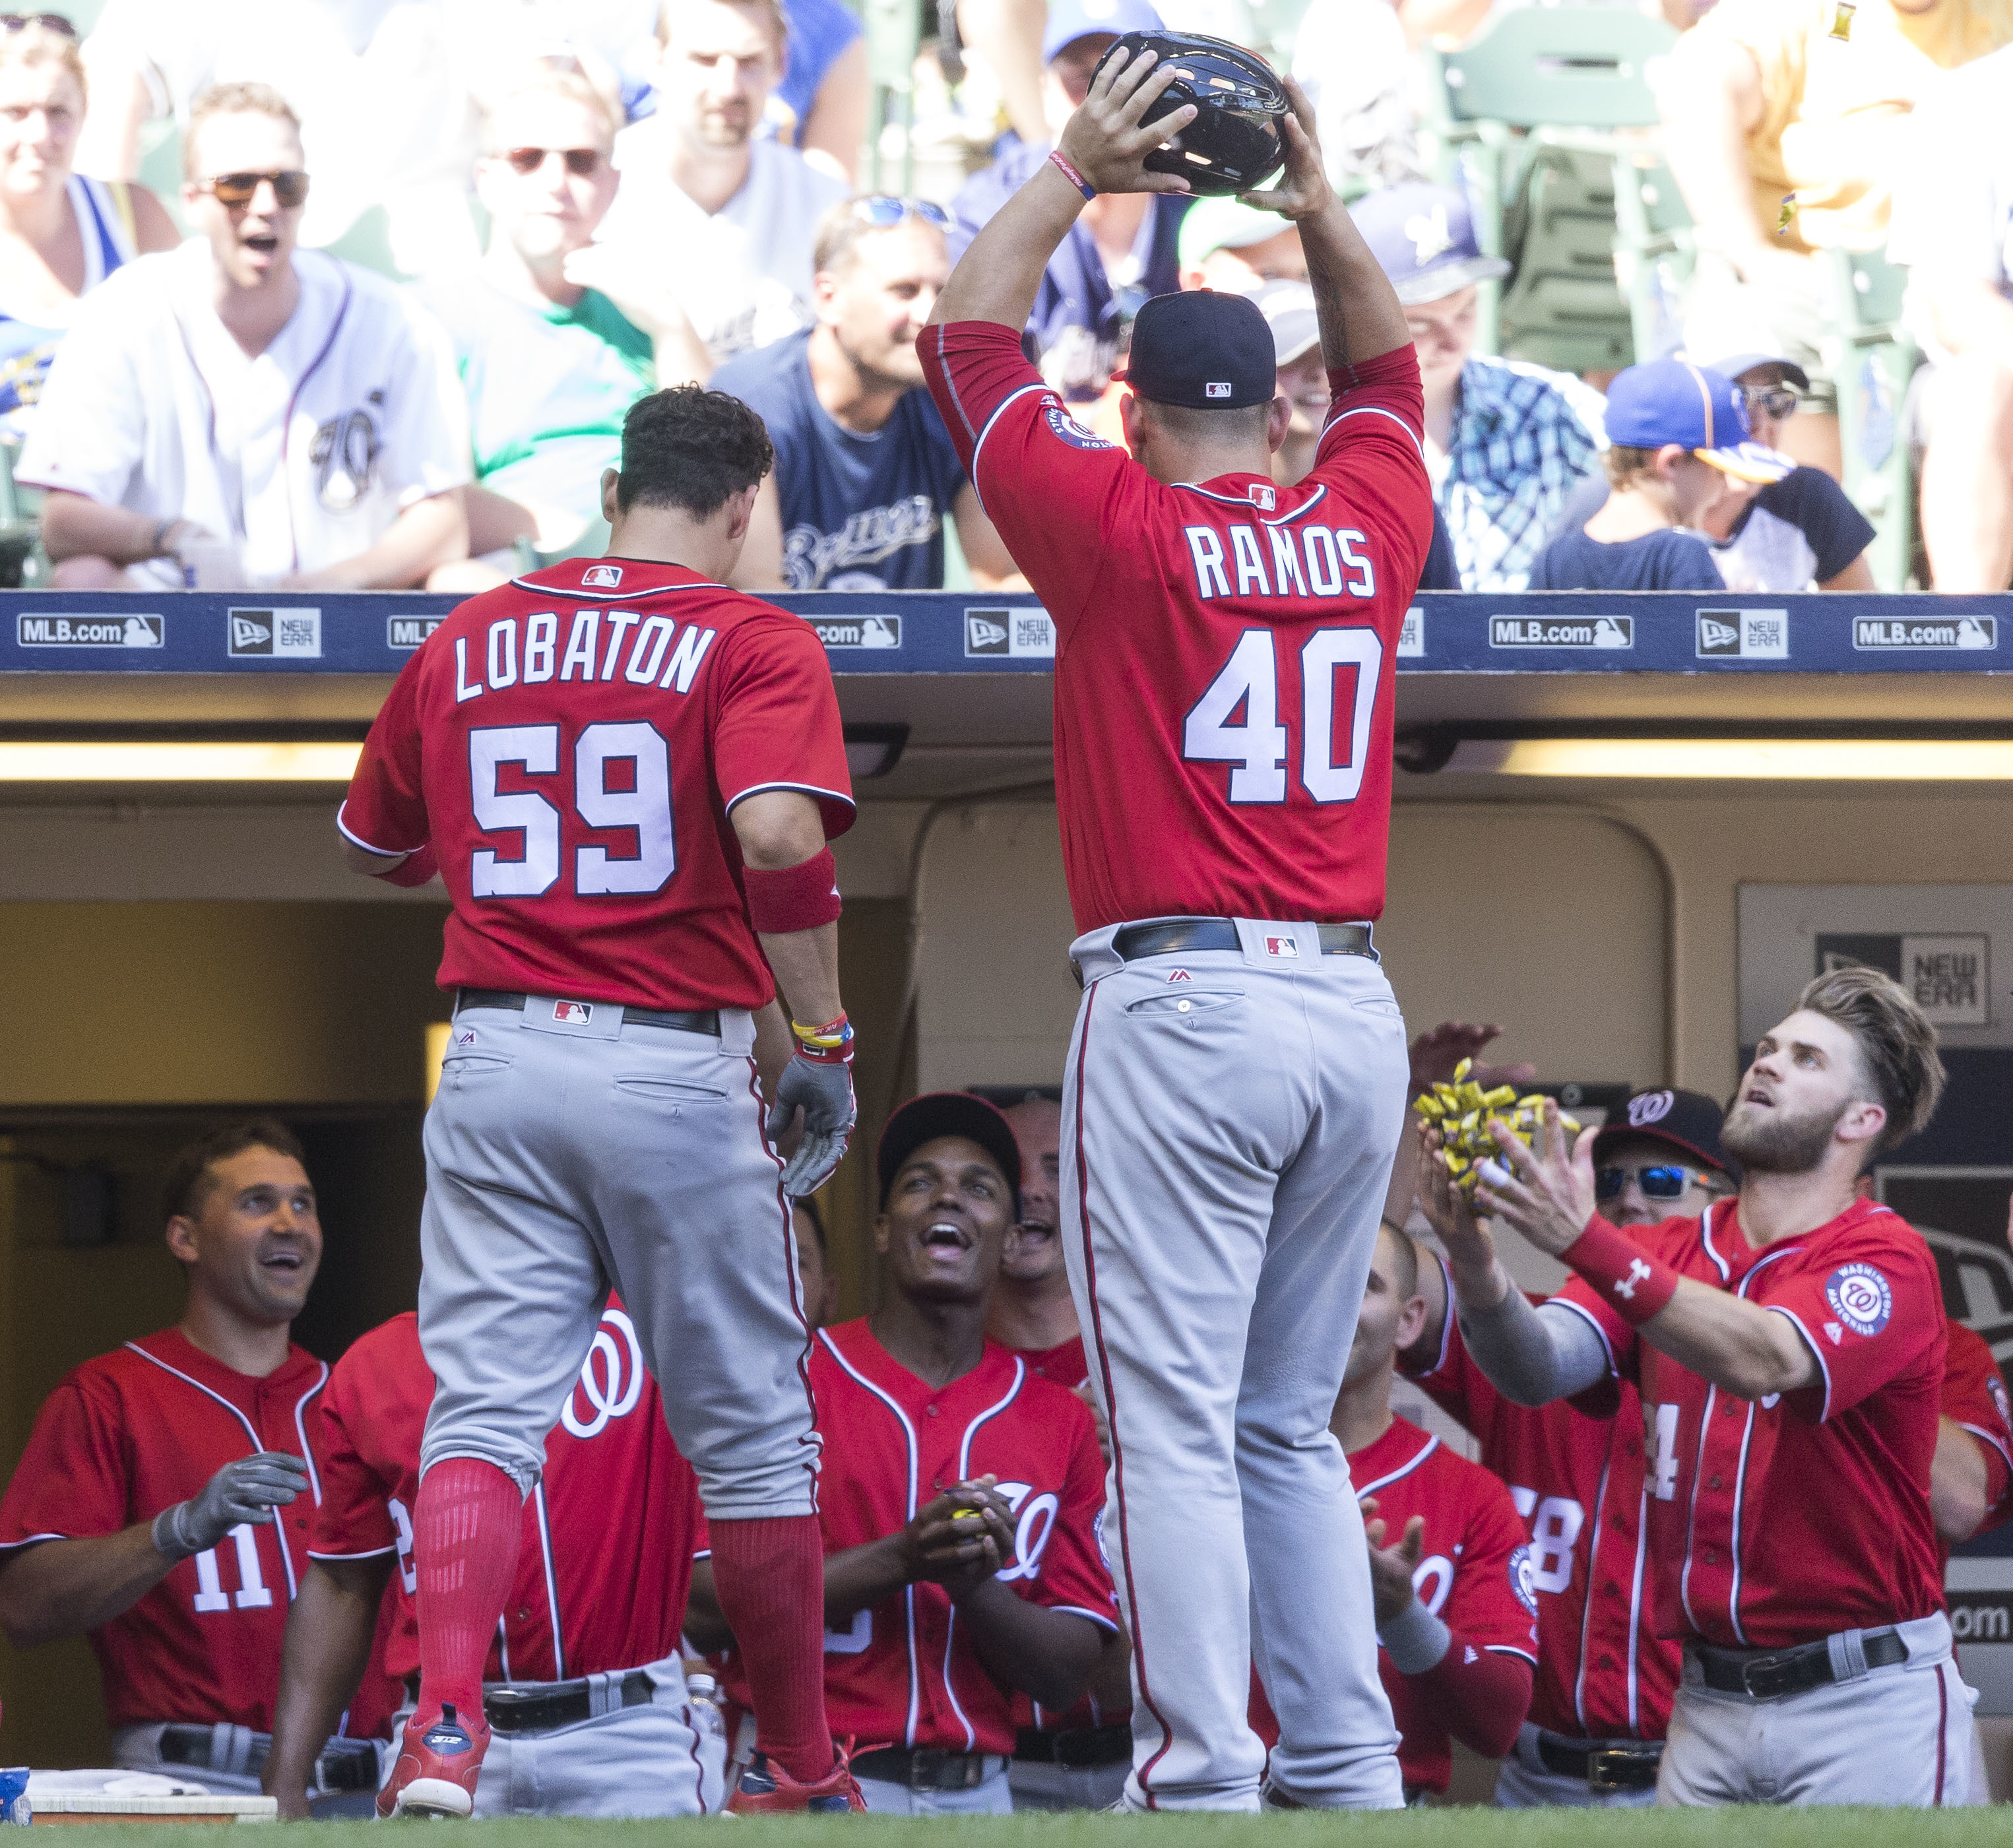 Washington Nationals' Jose Lobaton (59) is greeted by teammates after hitting a solo home run off Milwaukee Brewers' Jacob Barnes during the seventh inning of a baseball game Sunday, June 26, 2016, in Milwaukee. (AP Photo/Tom Lynn)